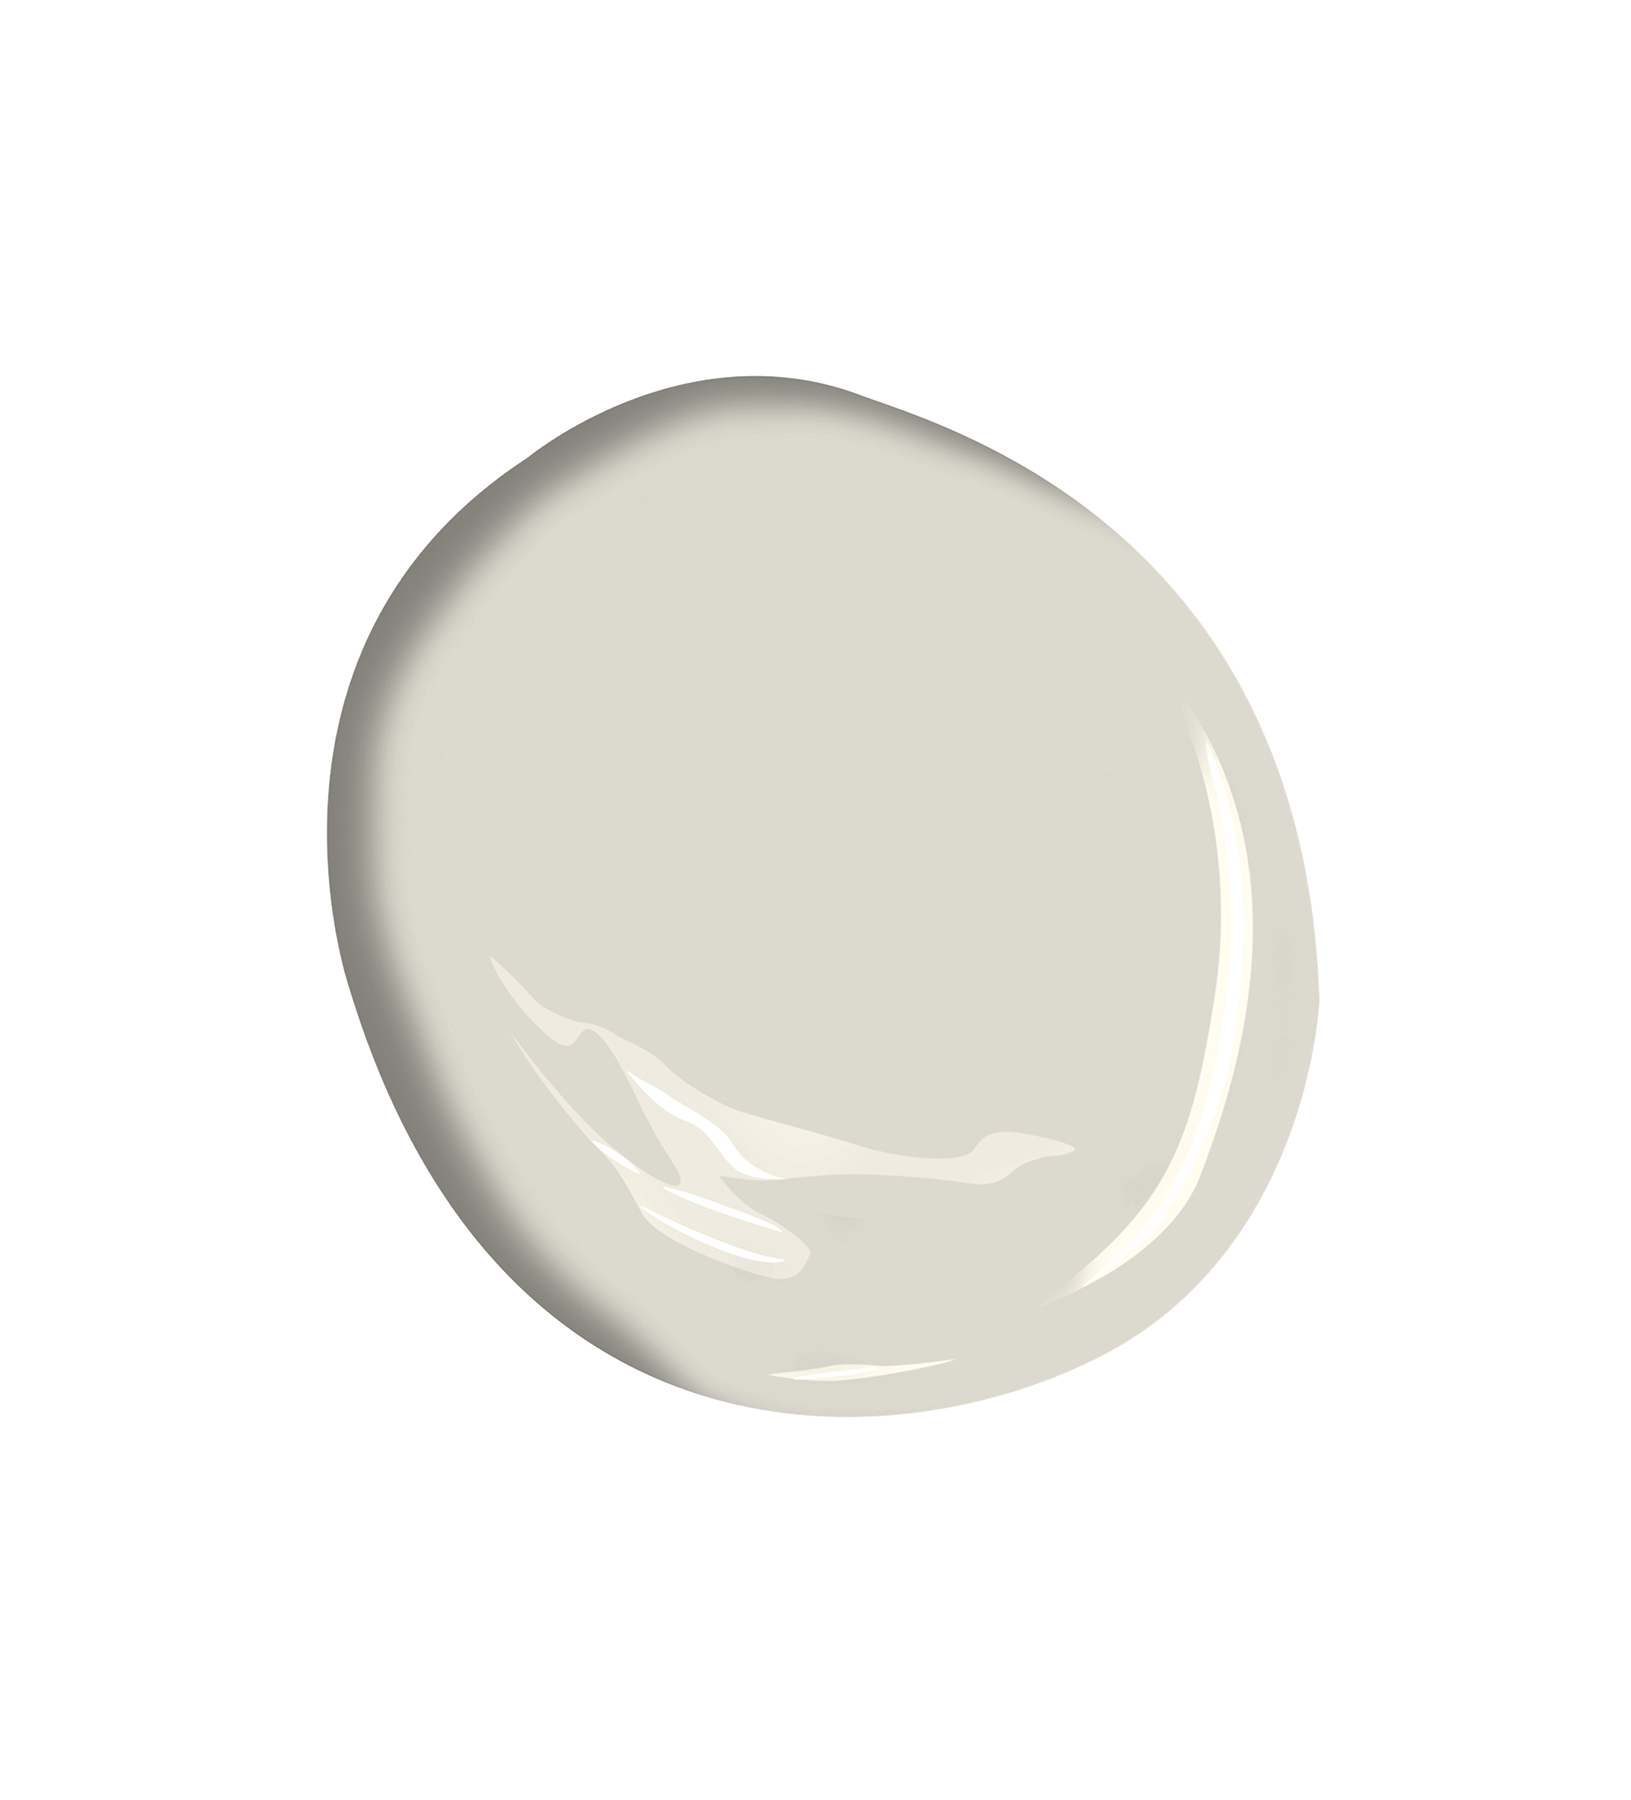 Light Pewter by Benjamin Moore